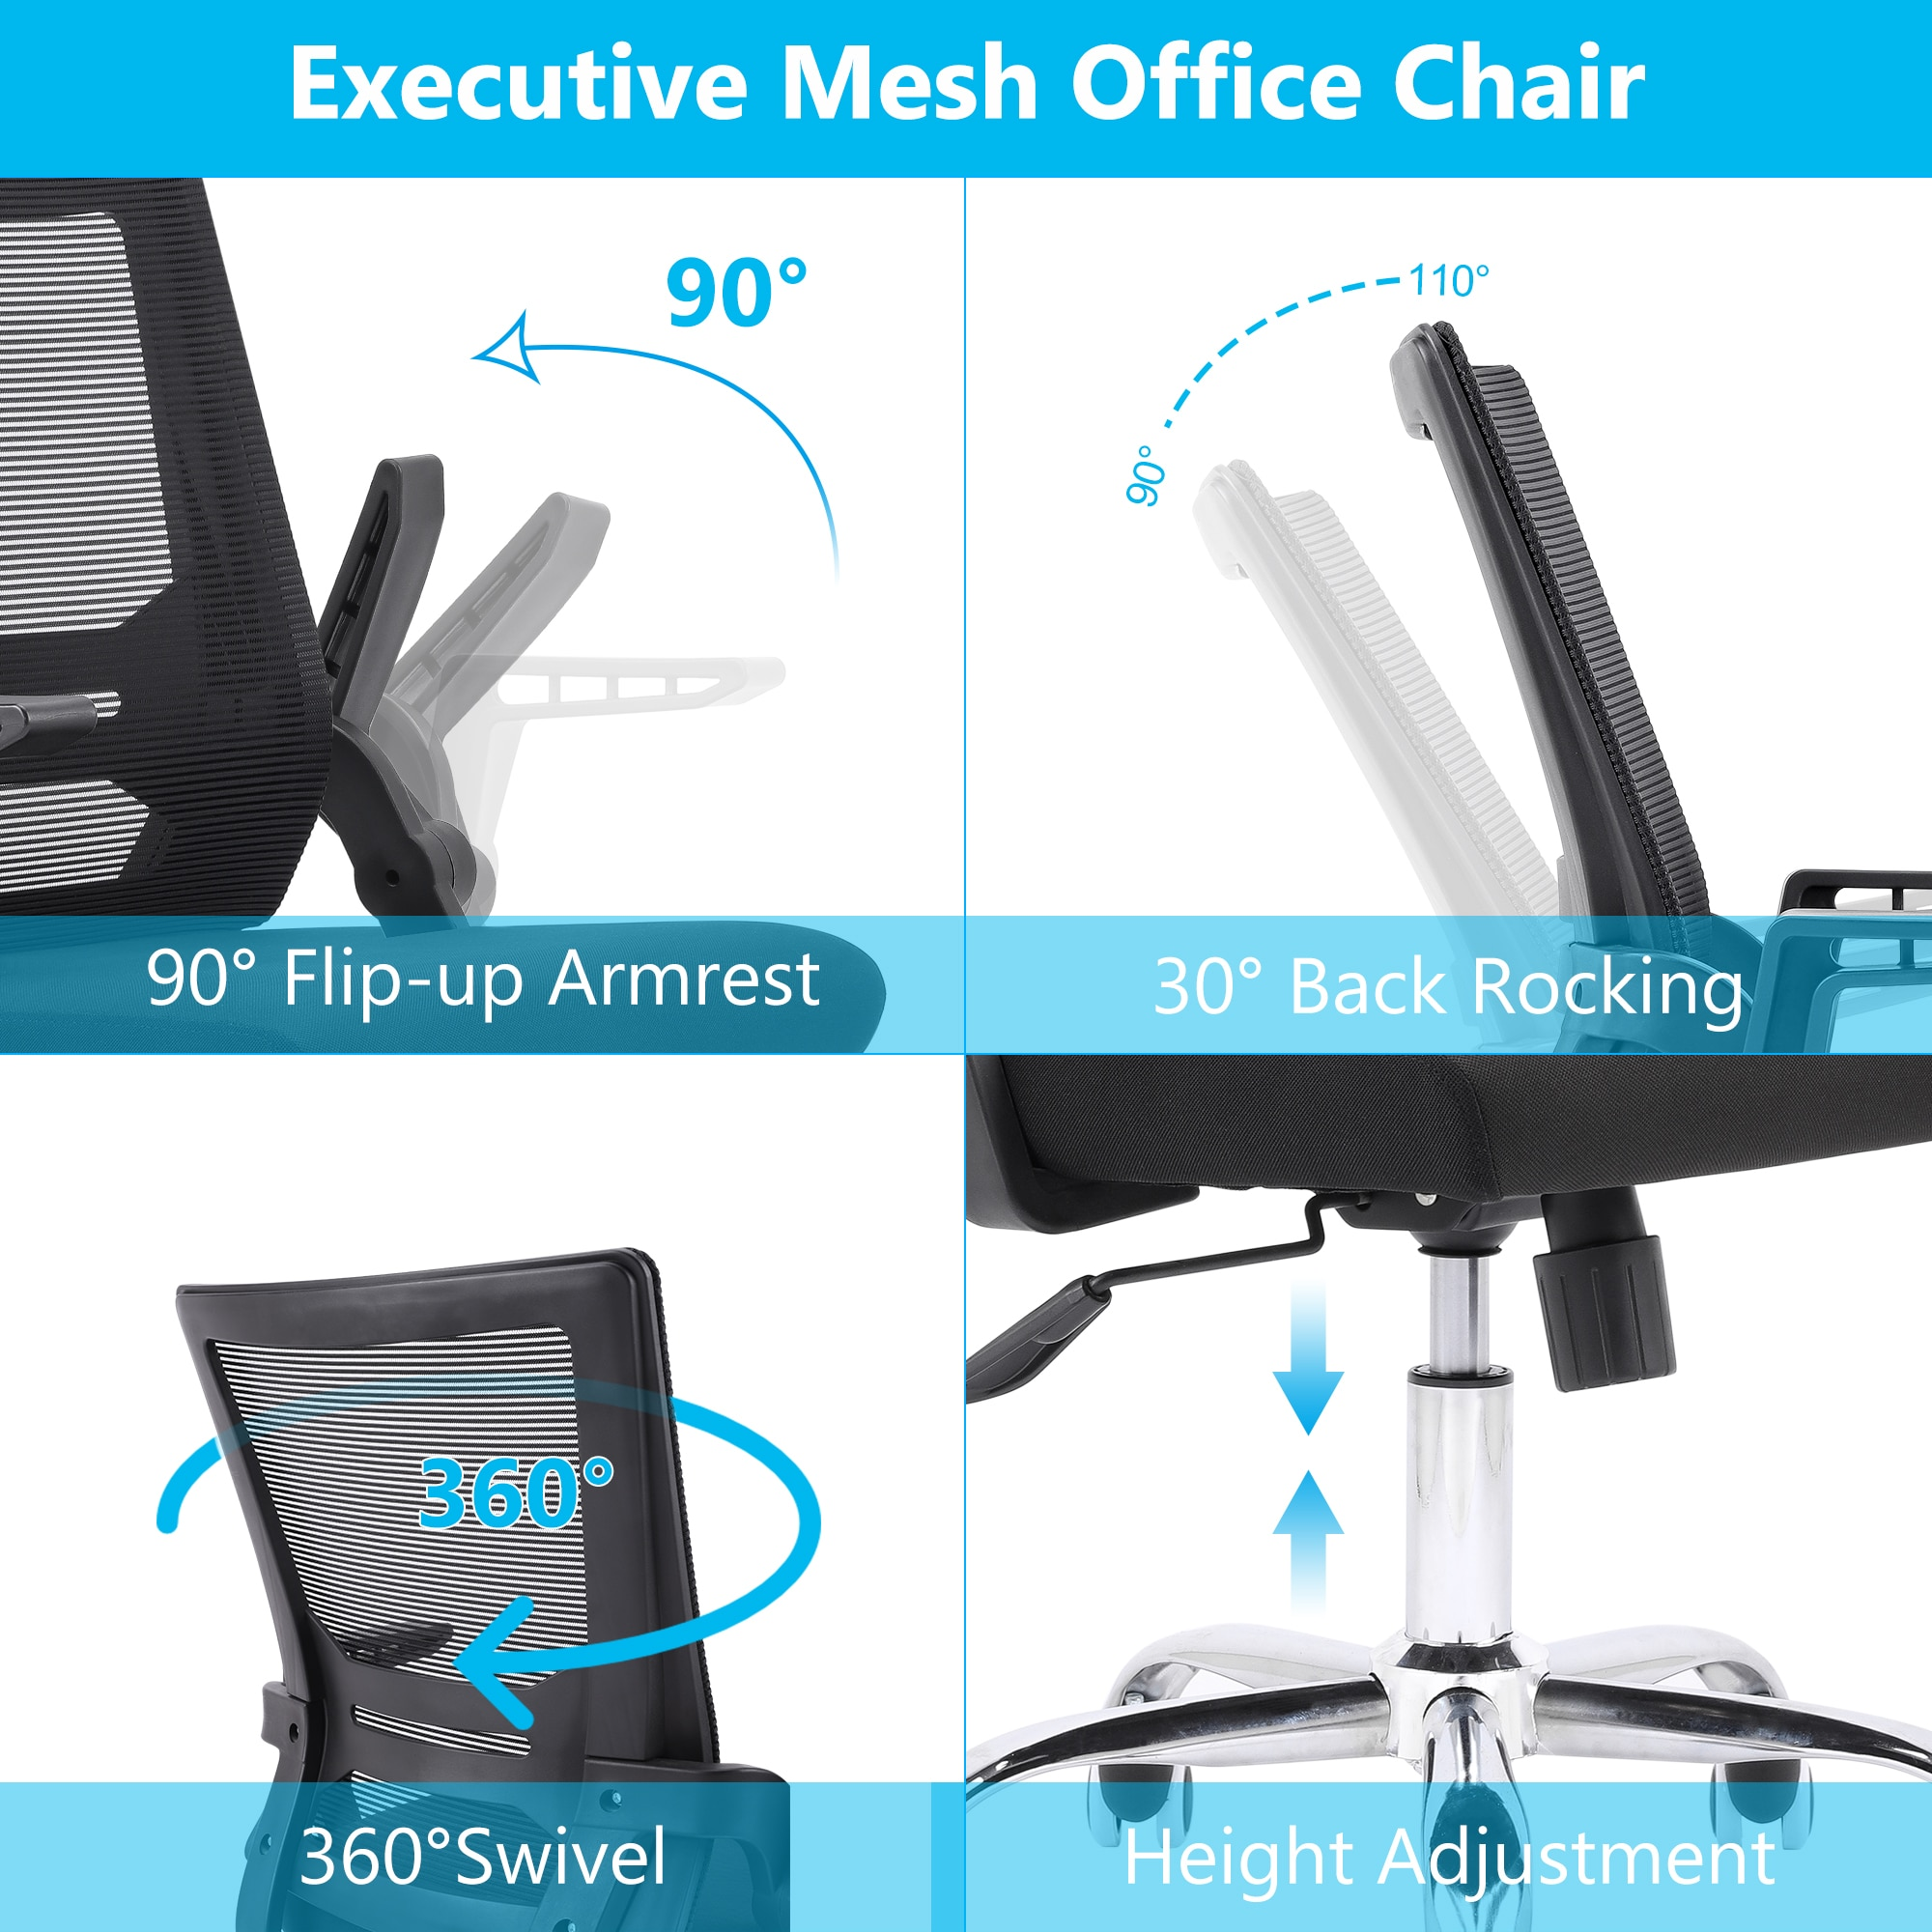 H0ba1534cd81e4af1ae1ddd4d6fa51f763 - Sigtua Swiveling Desk Chair Breathable Height-adjustable PC Chair Ergonomic Executive Black Computer Office Chair